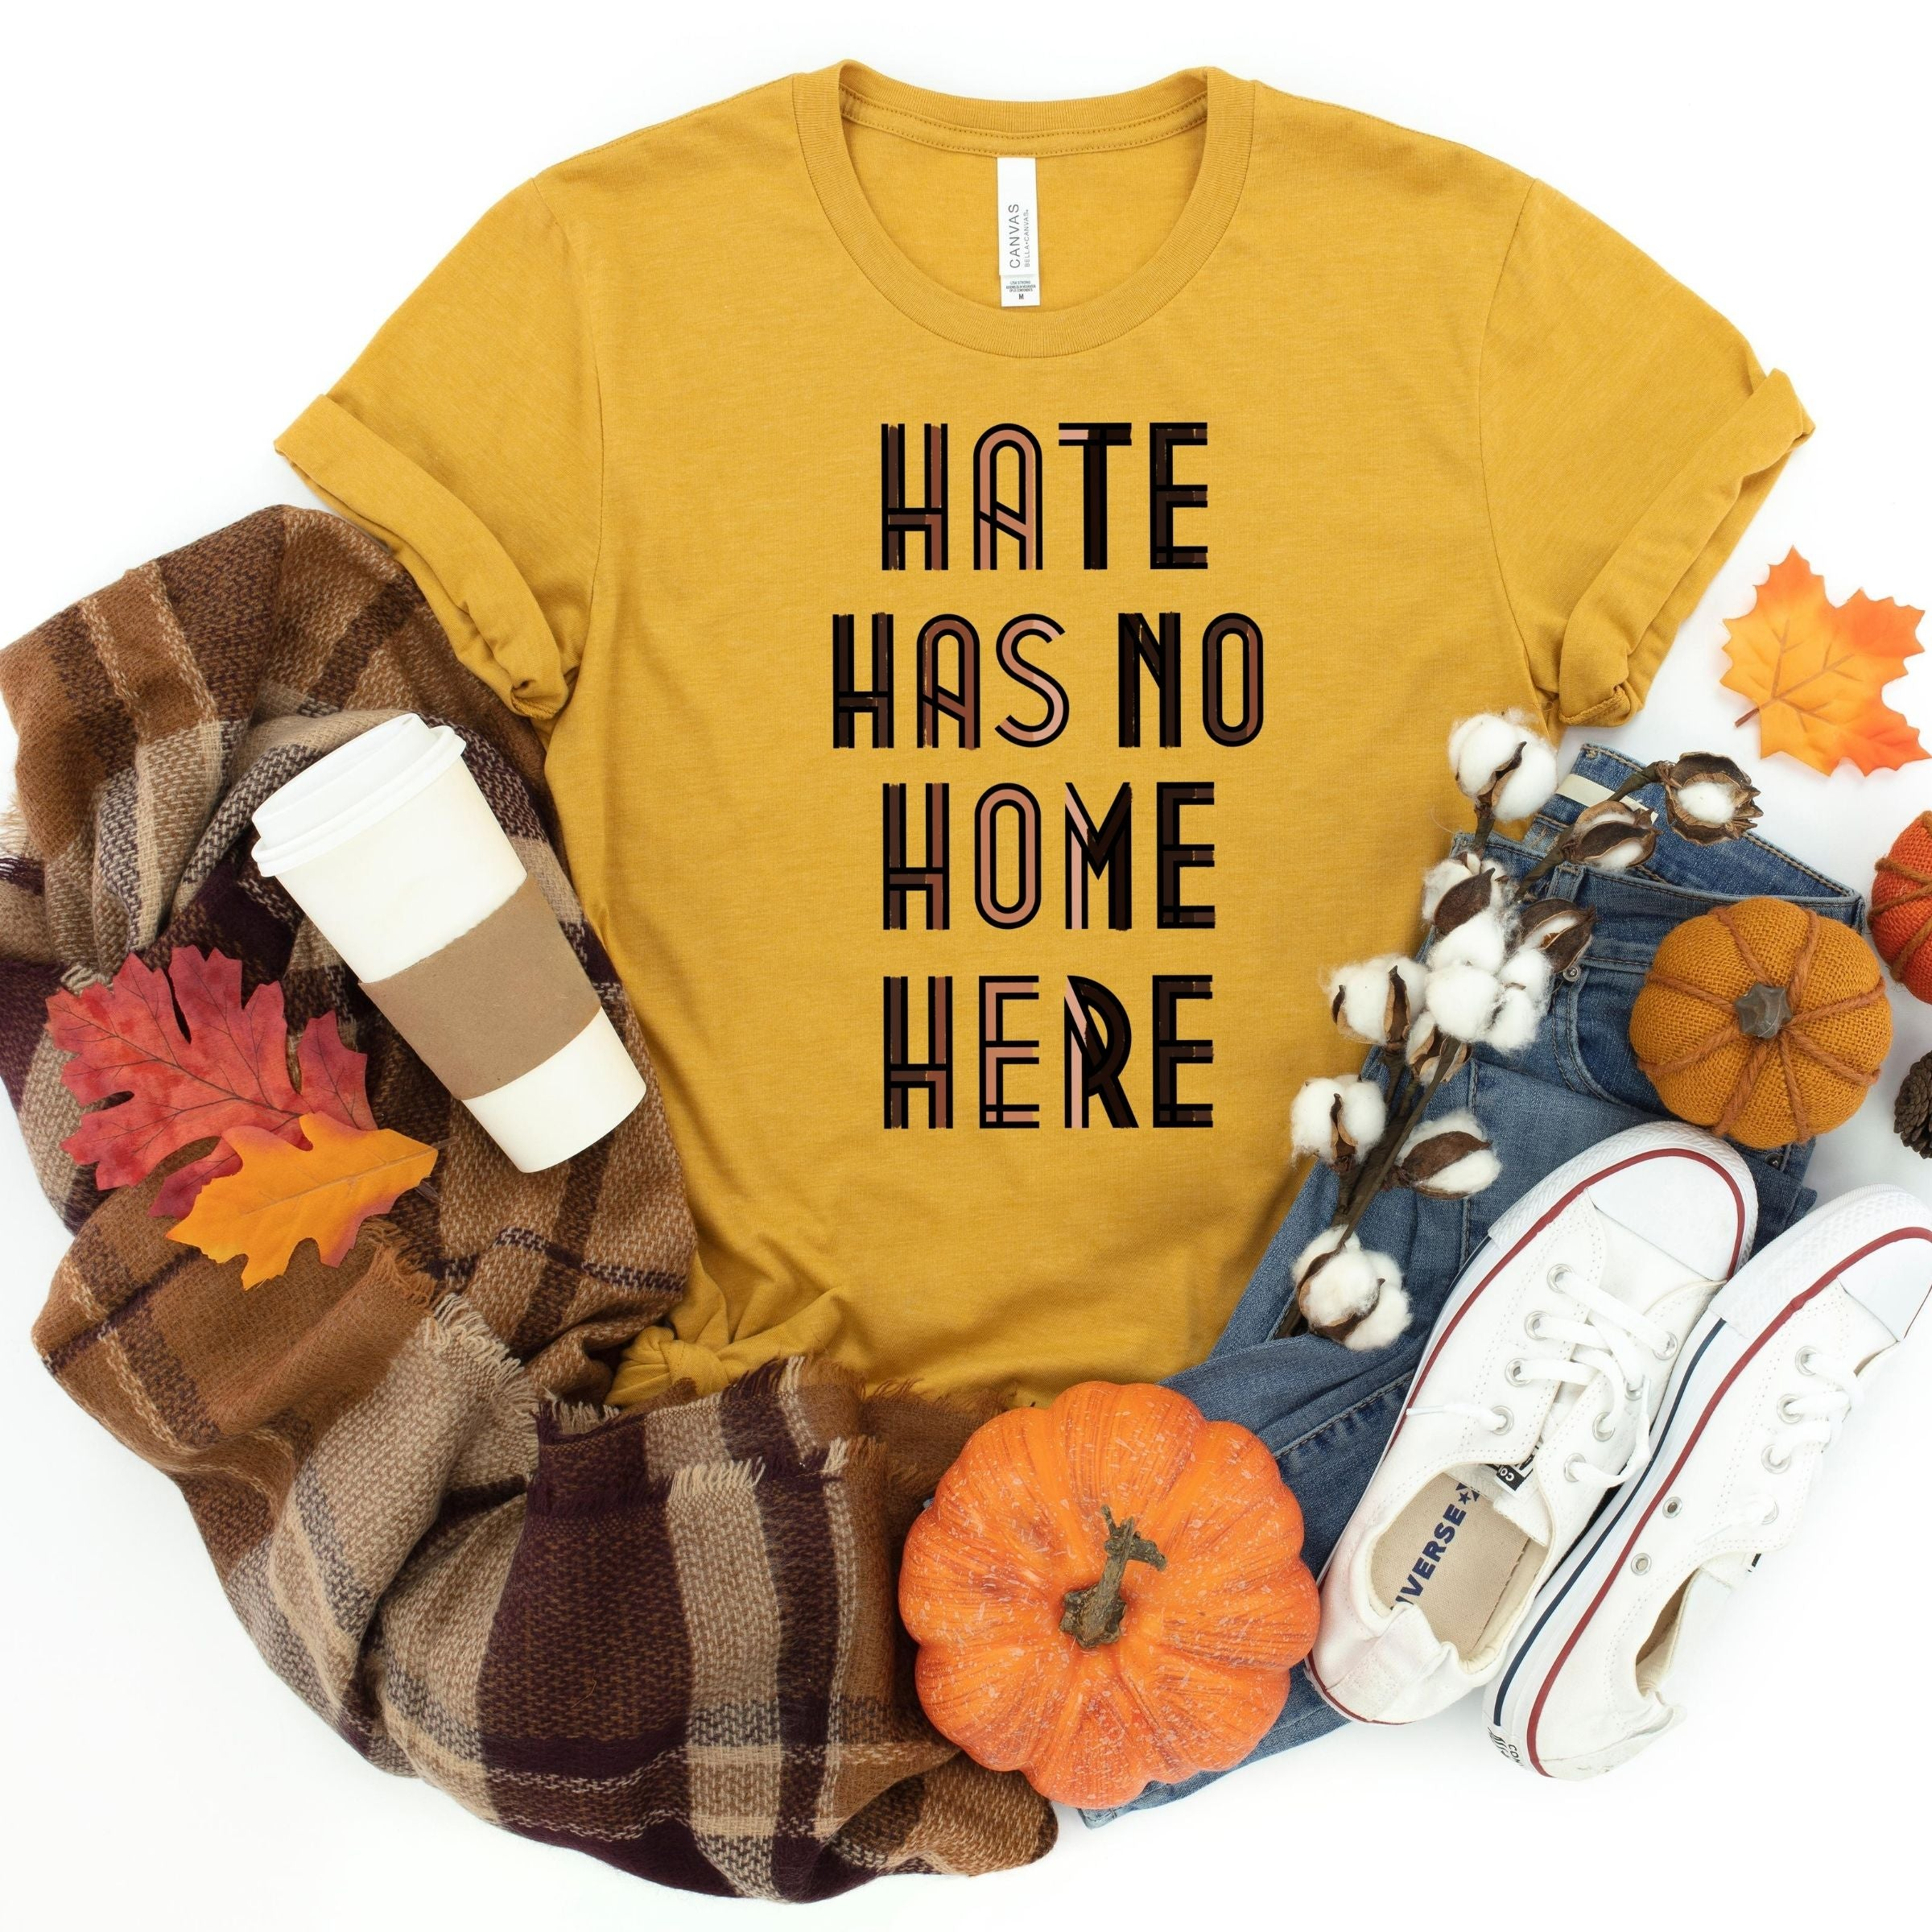 WHOLESALE :: Hate Has No Home Here~ Gold-Shop-Wholesale-Womens-Boutique-Custom-Graphic-Tees-Branding-Gifts